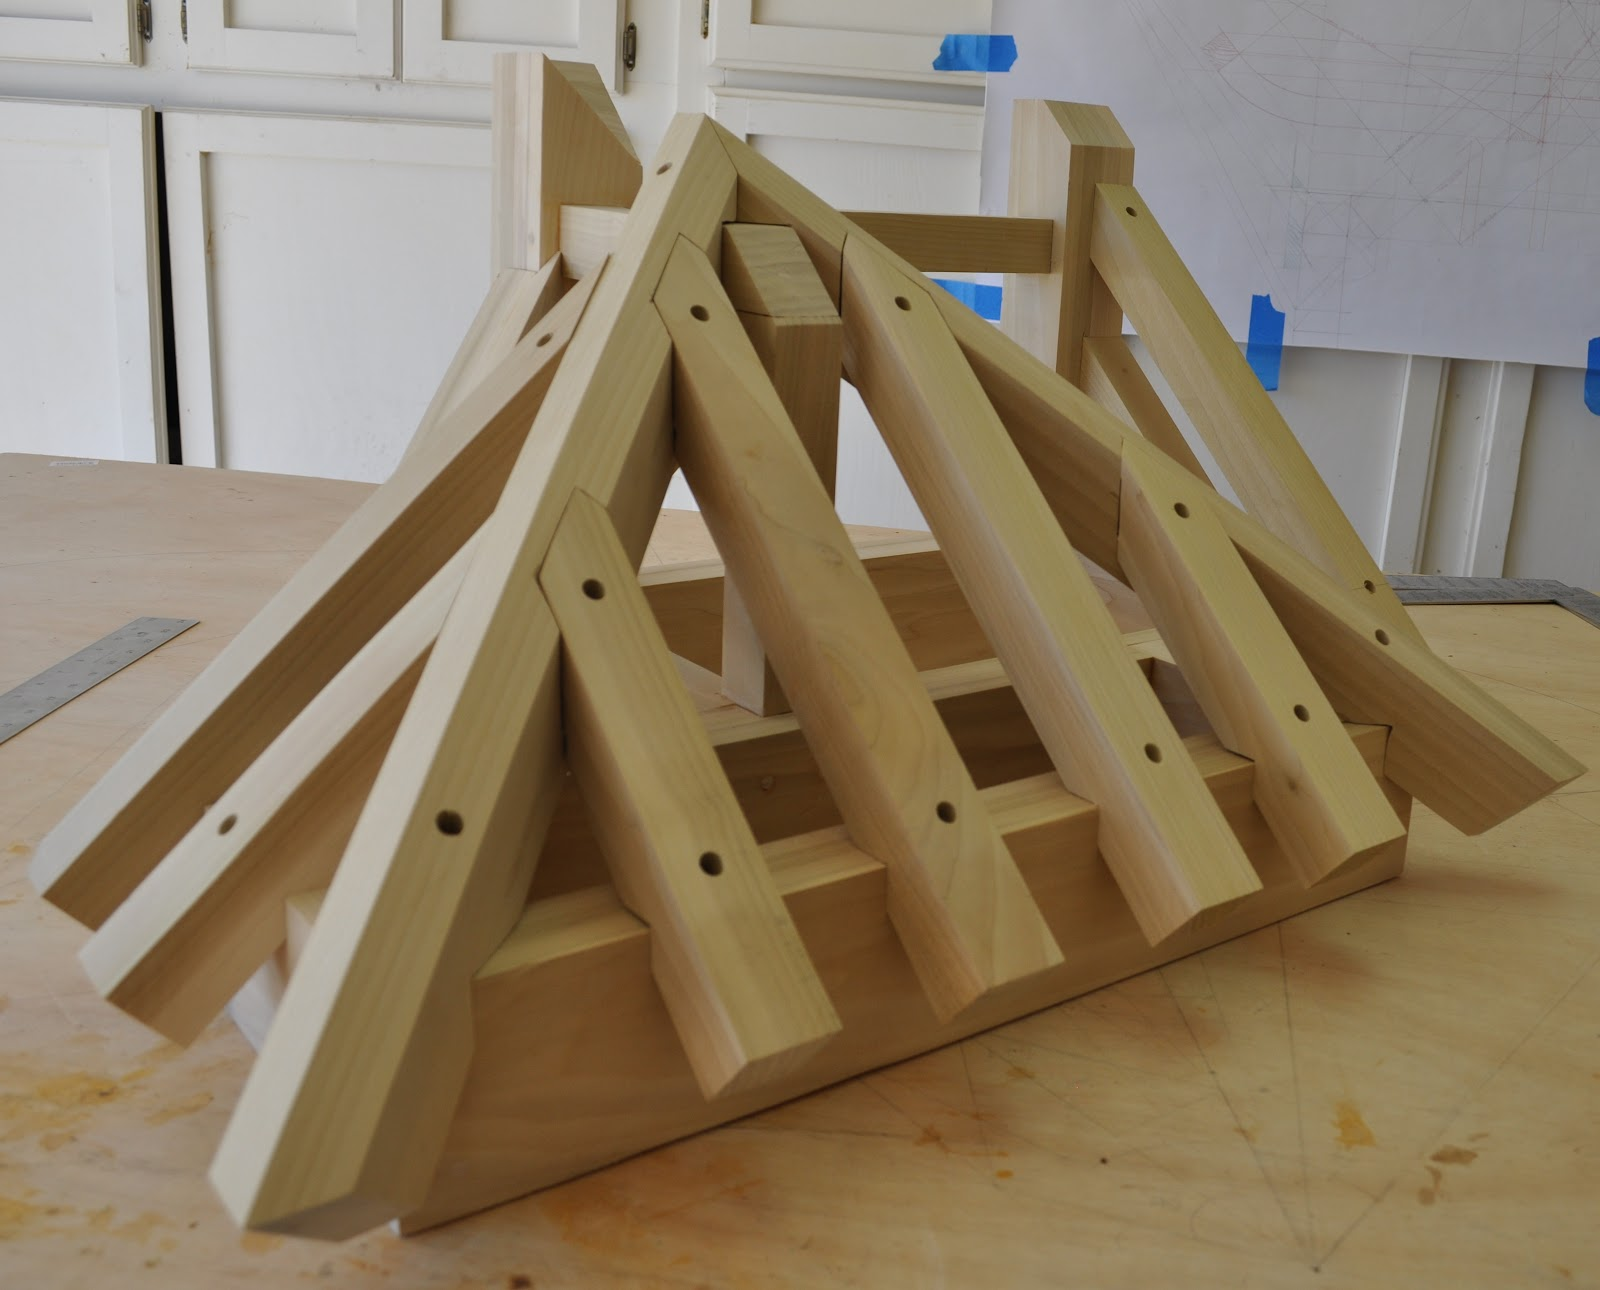 Roof Framing Geometry Square Cut Tenon Jack Rafters